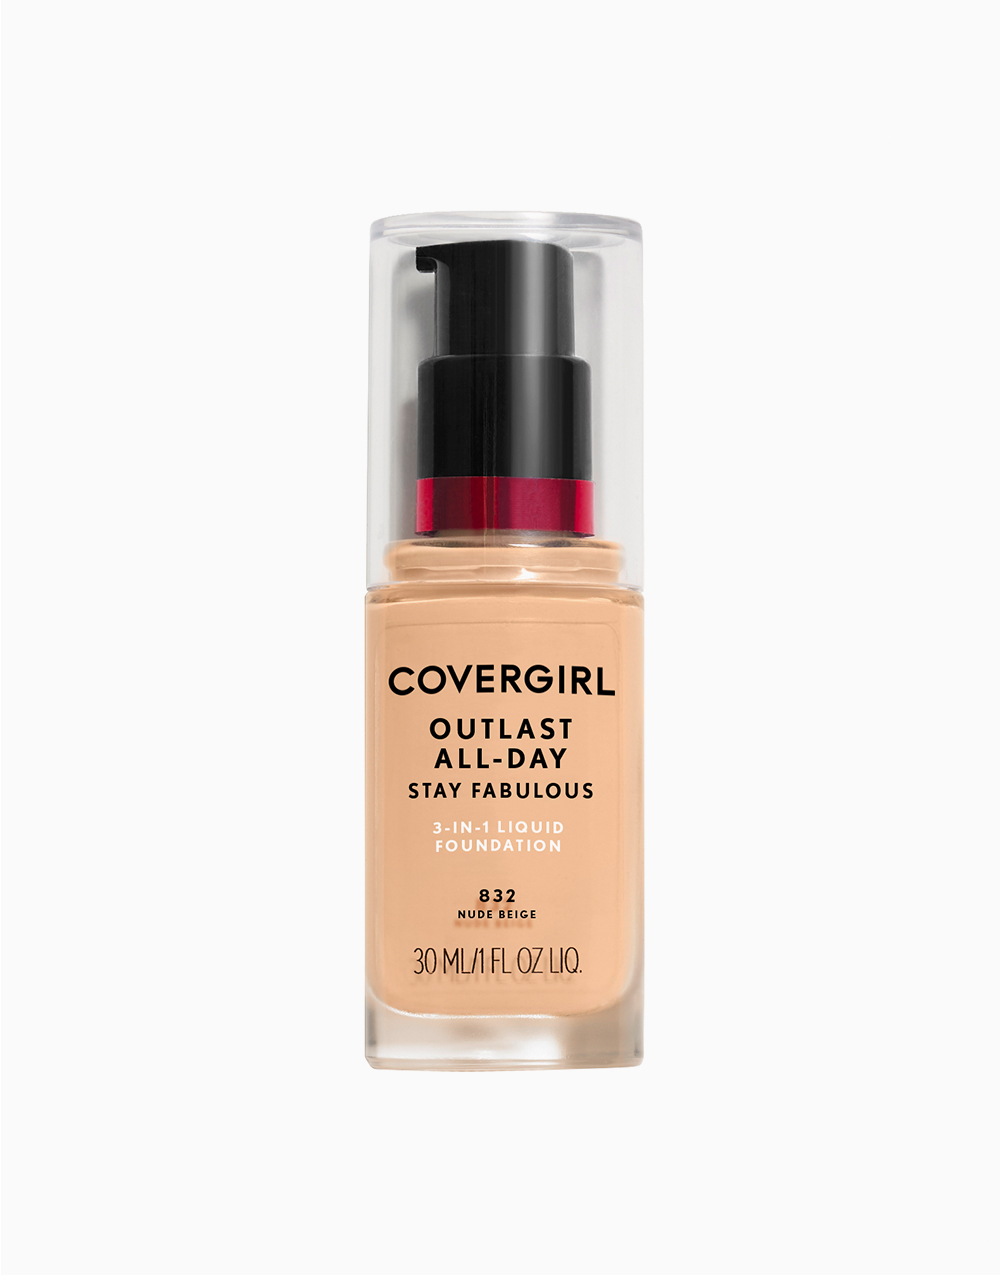 Outlast Stay Fabulous 3-in-1 Foundation by CoverGirl   Nude Beige